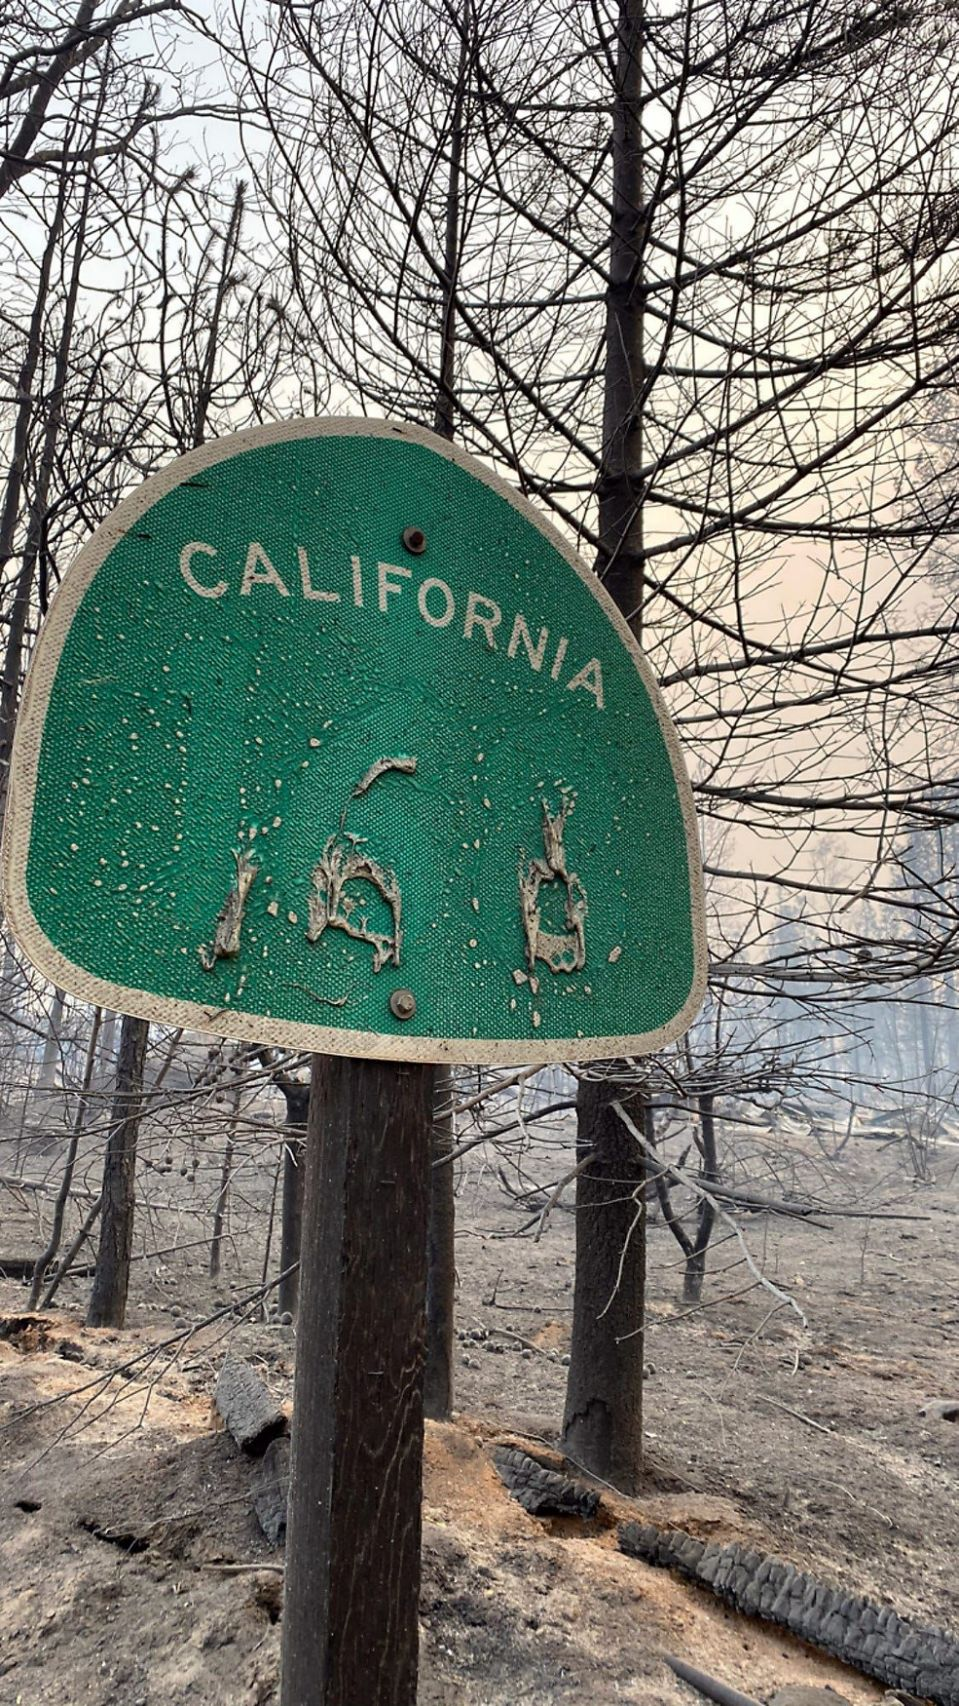 Heat from the Creek Fire melted the lettering off this roadside sign near Shaver Lake, California, on Wednesday, Sept. 9, 2020.